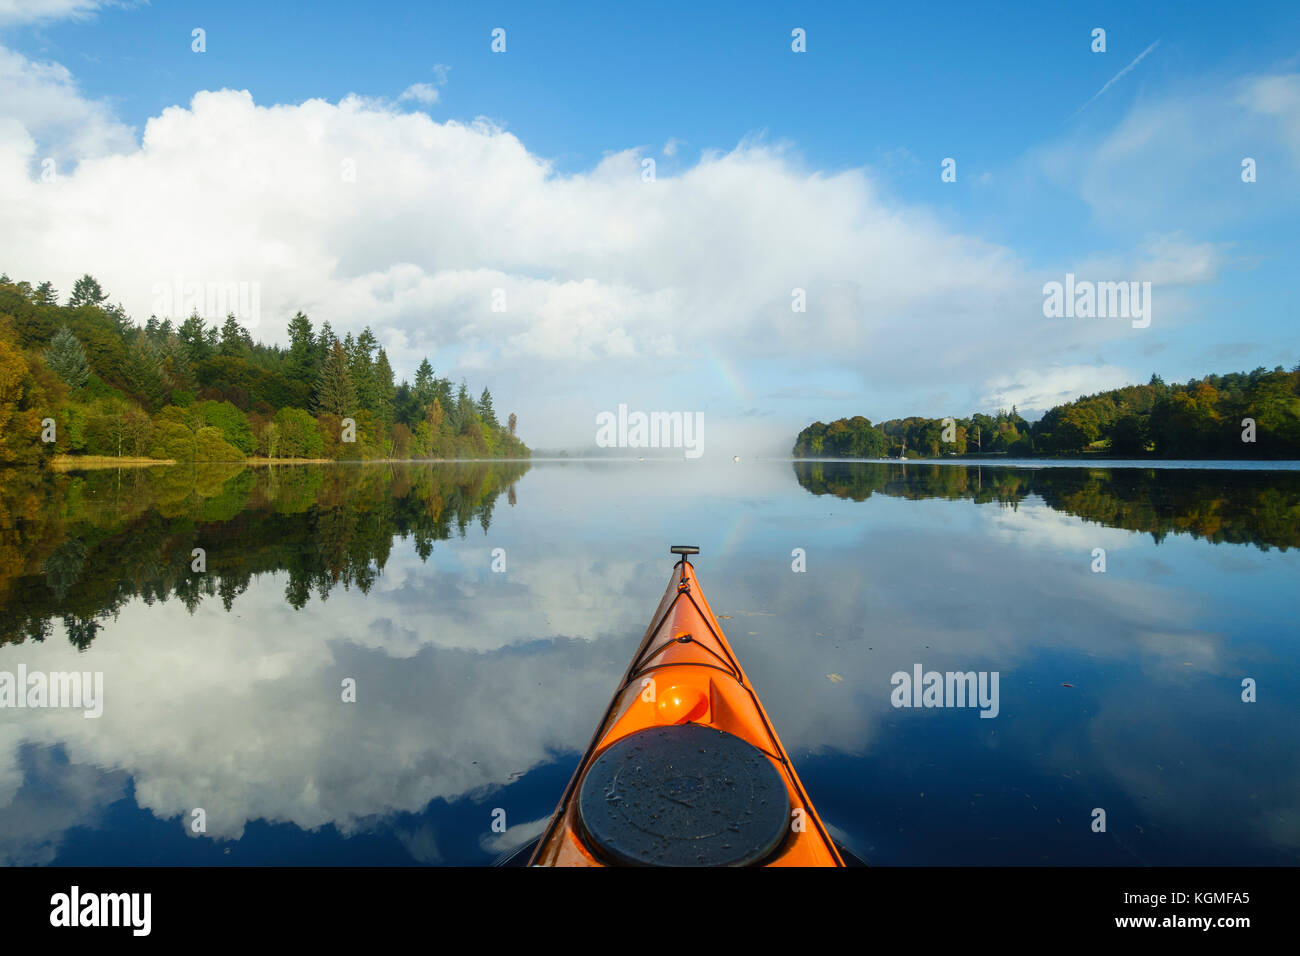 Kayaking on Loch Ken, Dumfries & Galloway, Scotland - Stock Image